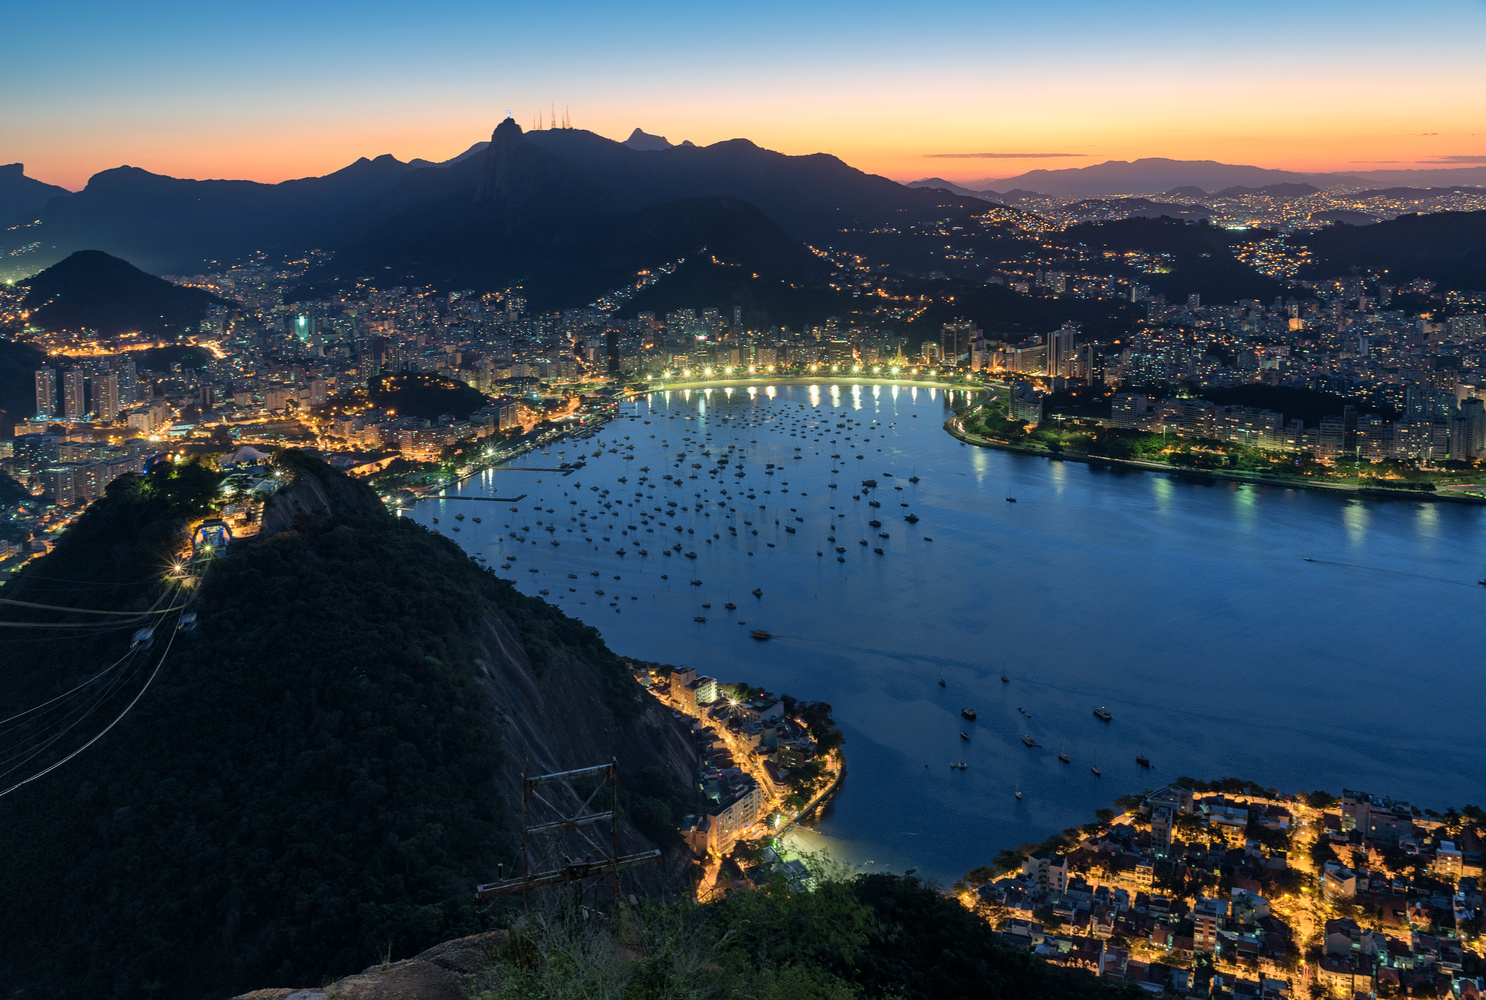 Panorama from the Sugar Loaf Mountain by Gabor Szarvas